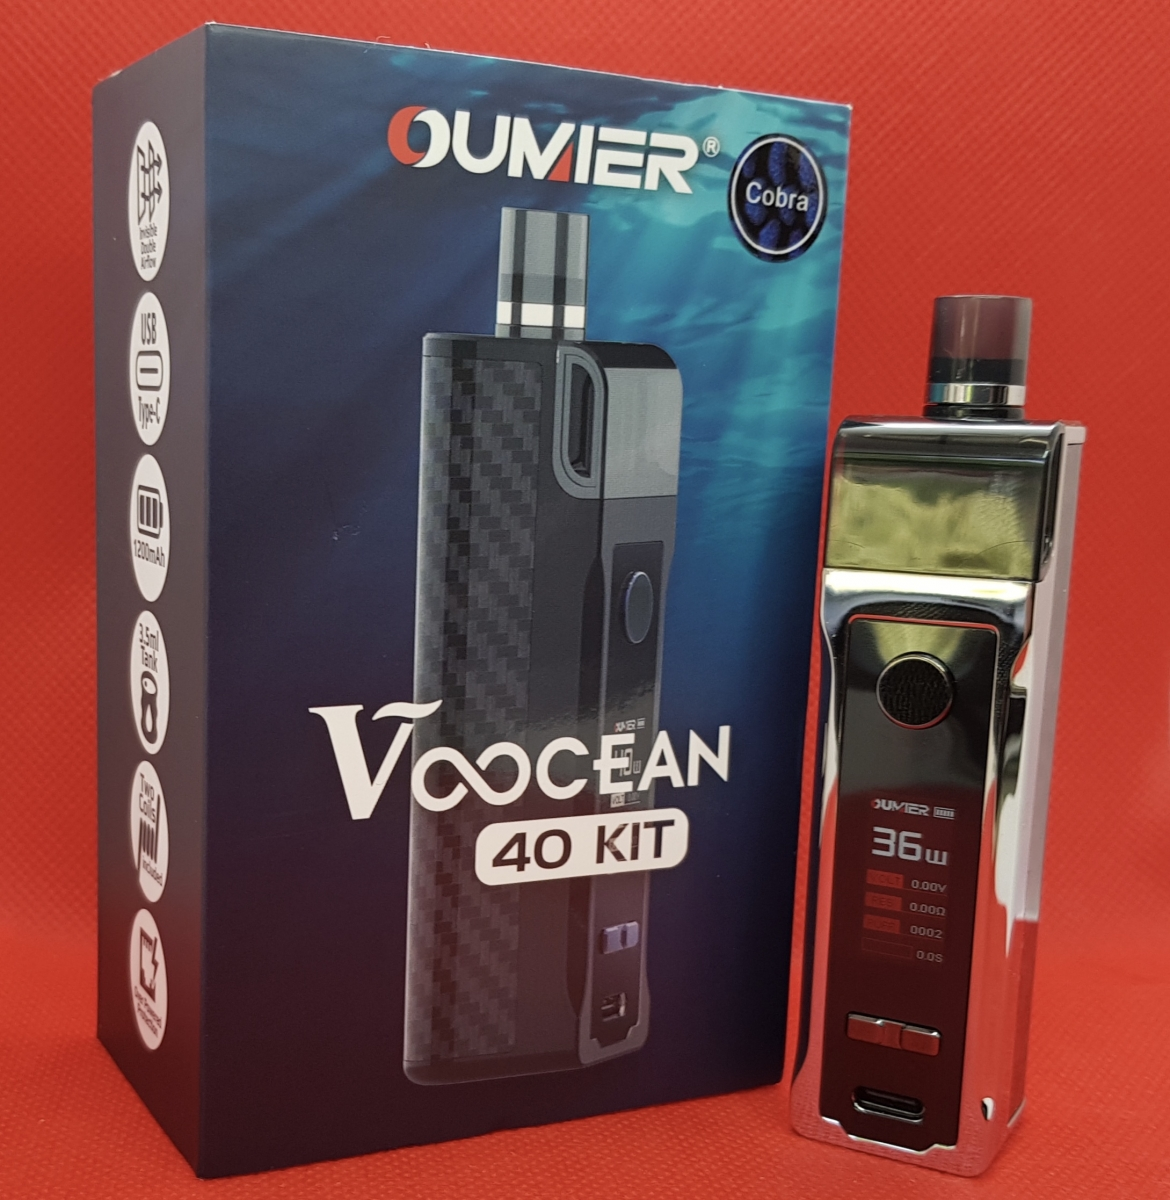 Oumier Voocean 40 kit with box